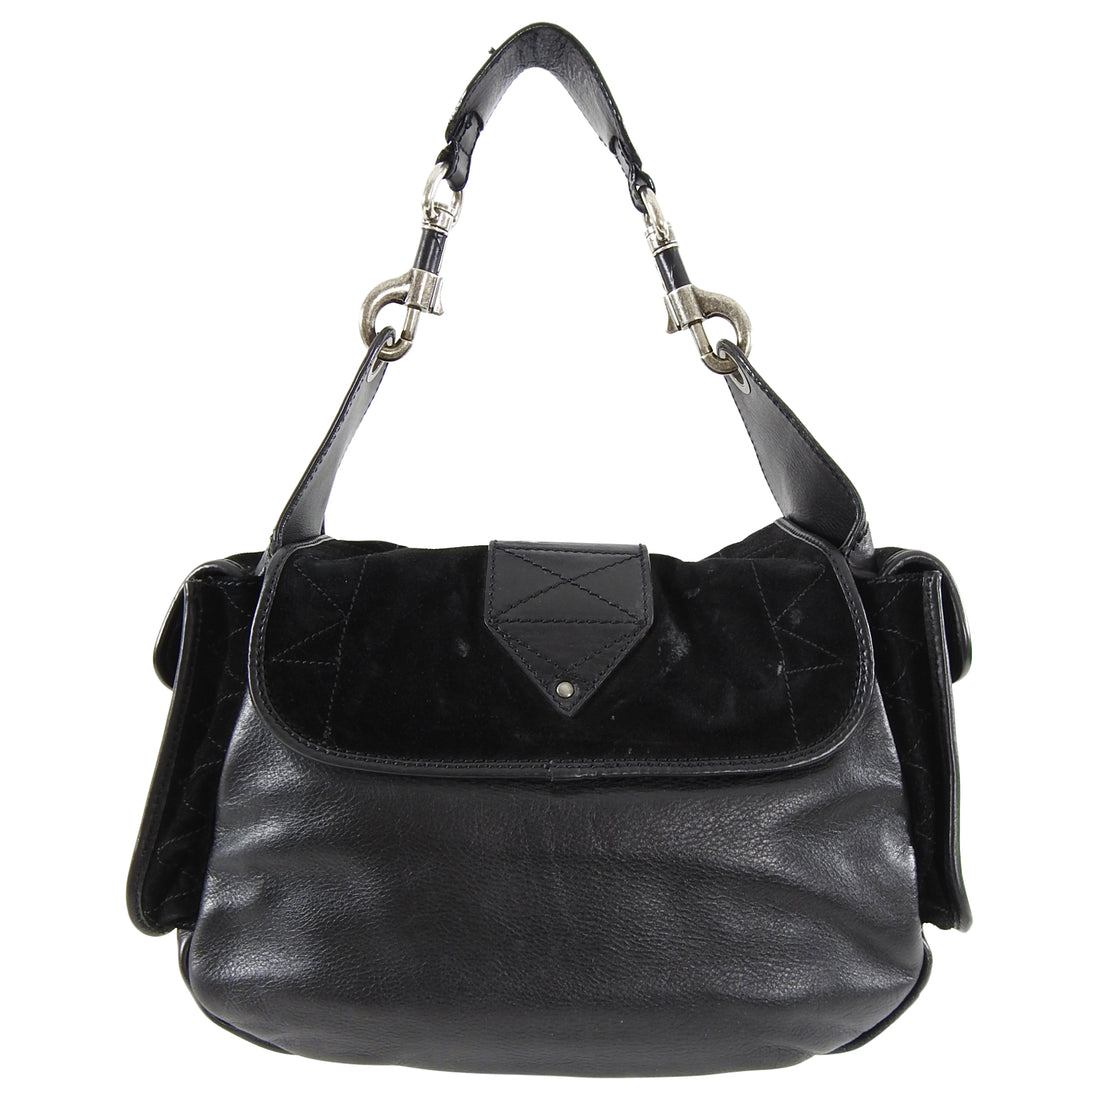 Christian Dior Rebelle Black Suede and Leather Bag